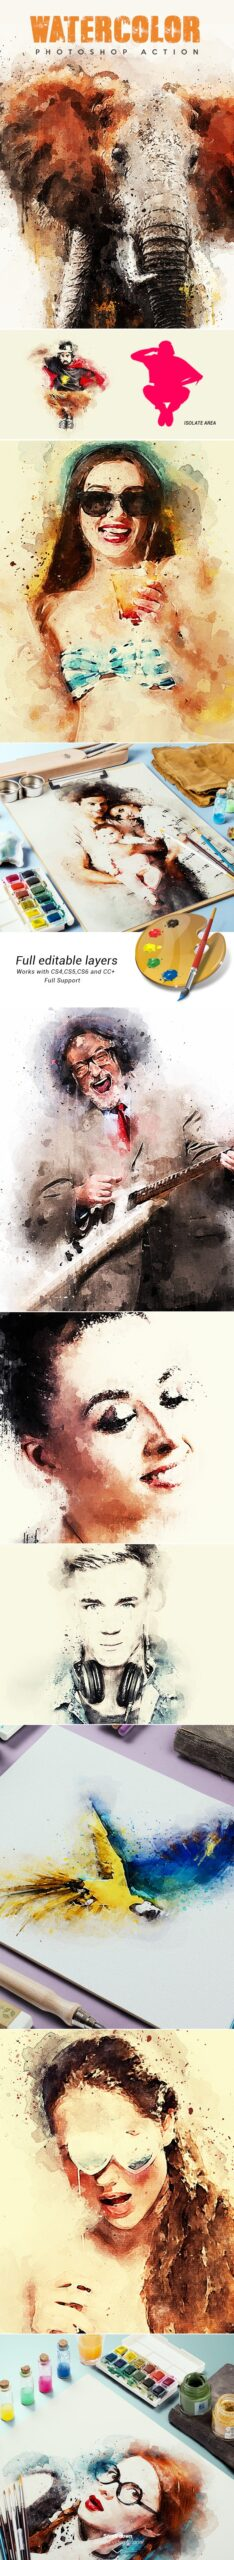 دانلود Watercolor – Photoshop Action